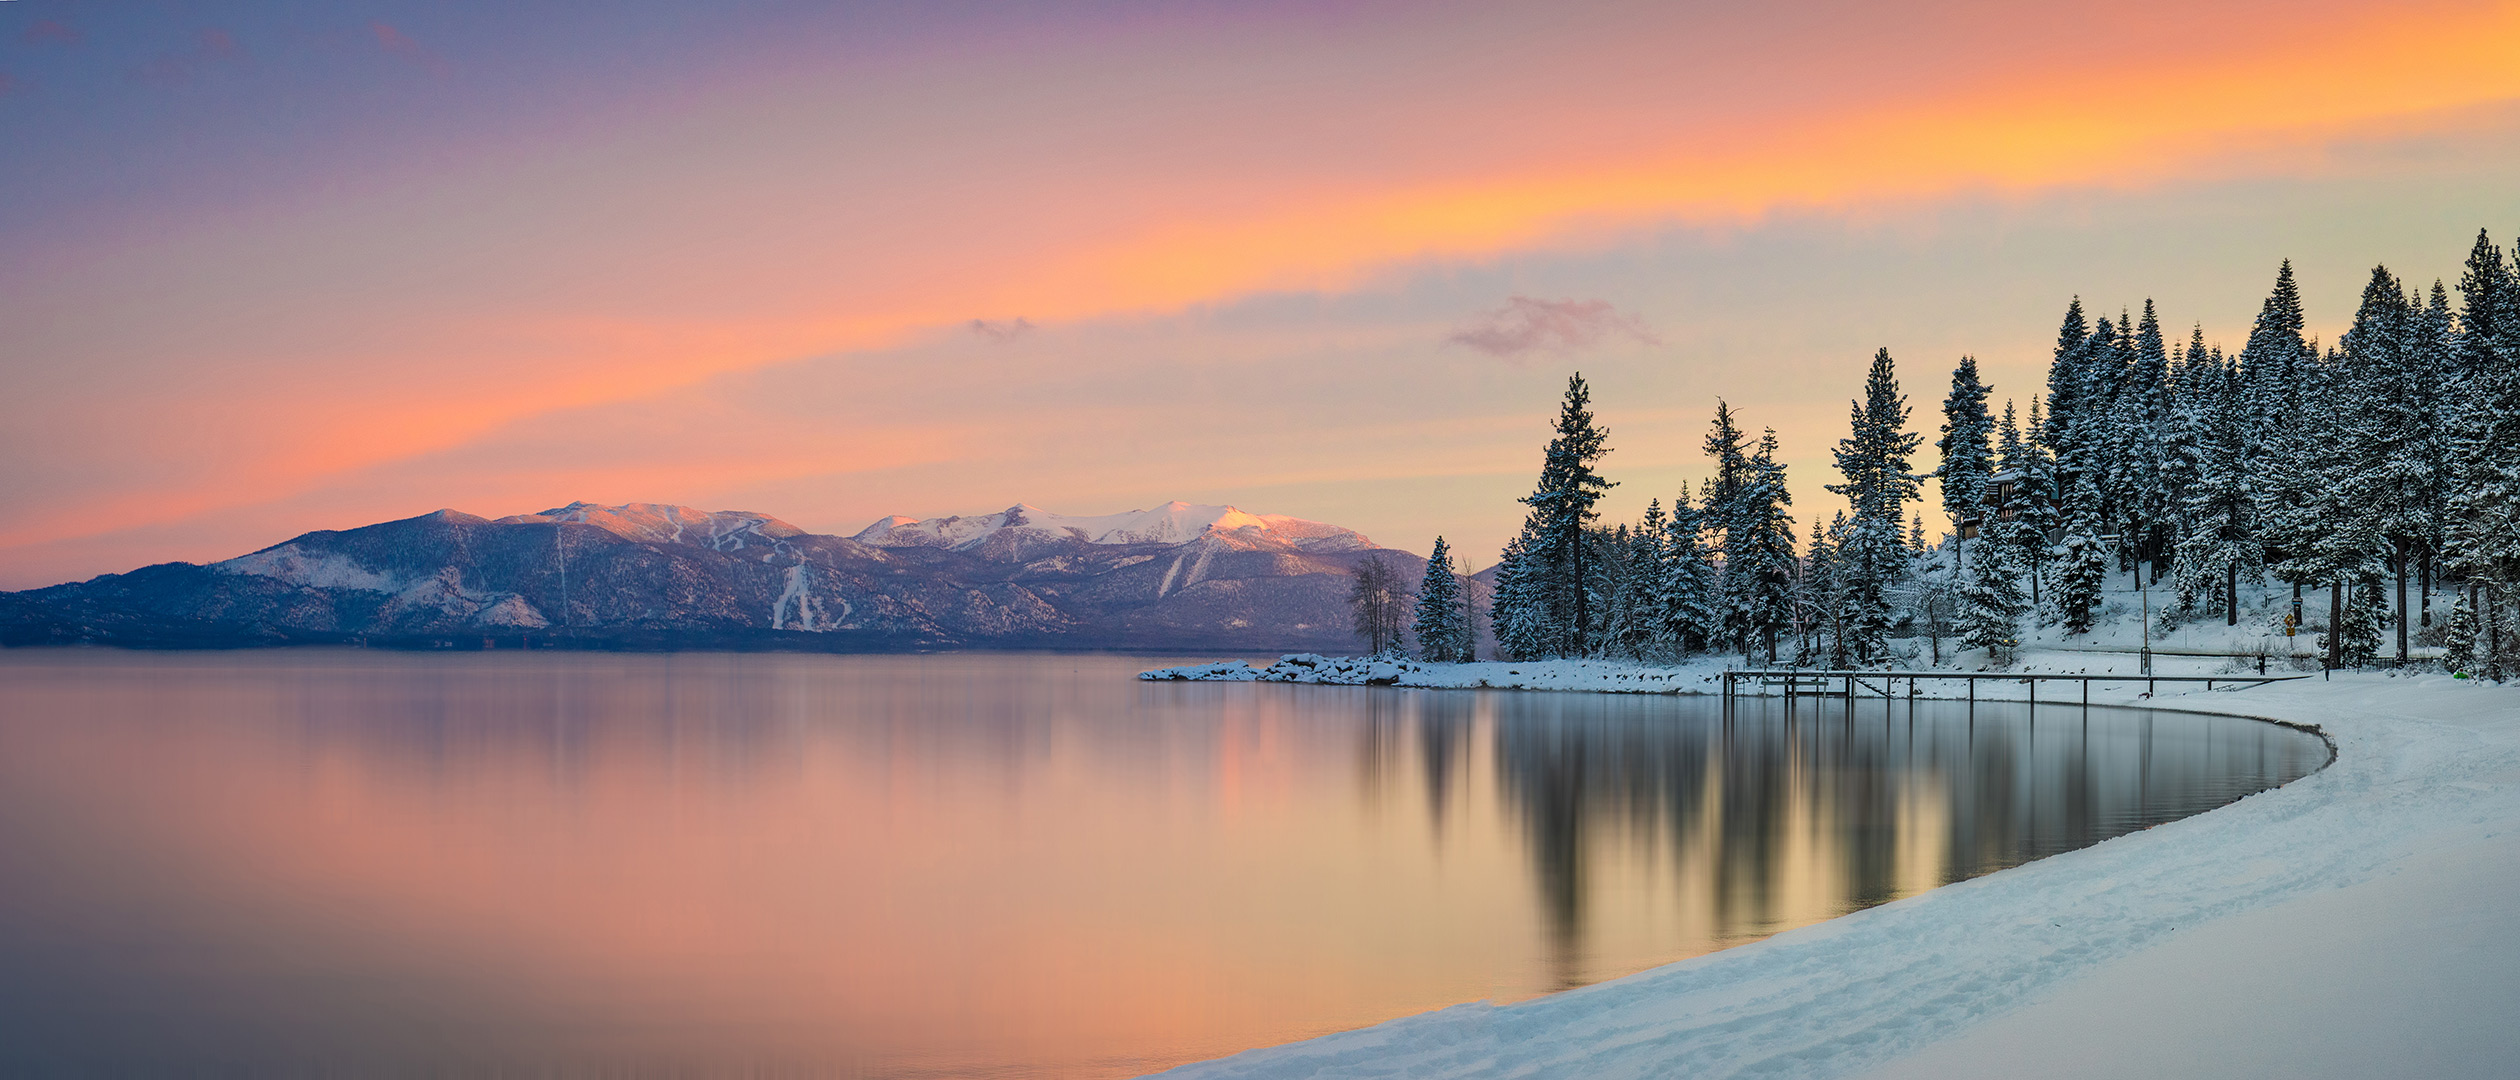 Sunset at Lake Tahoe.